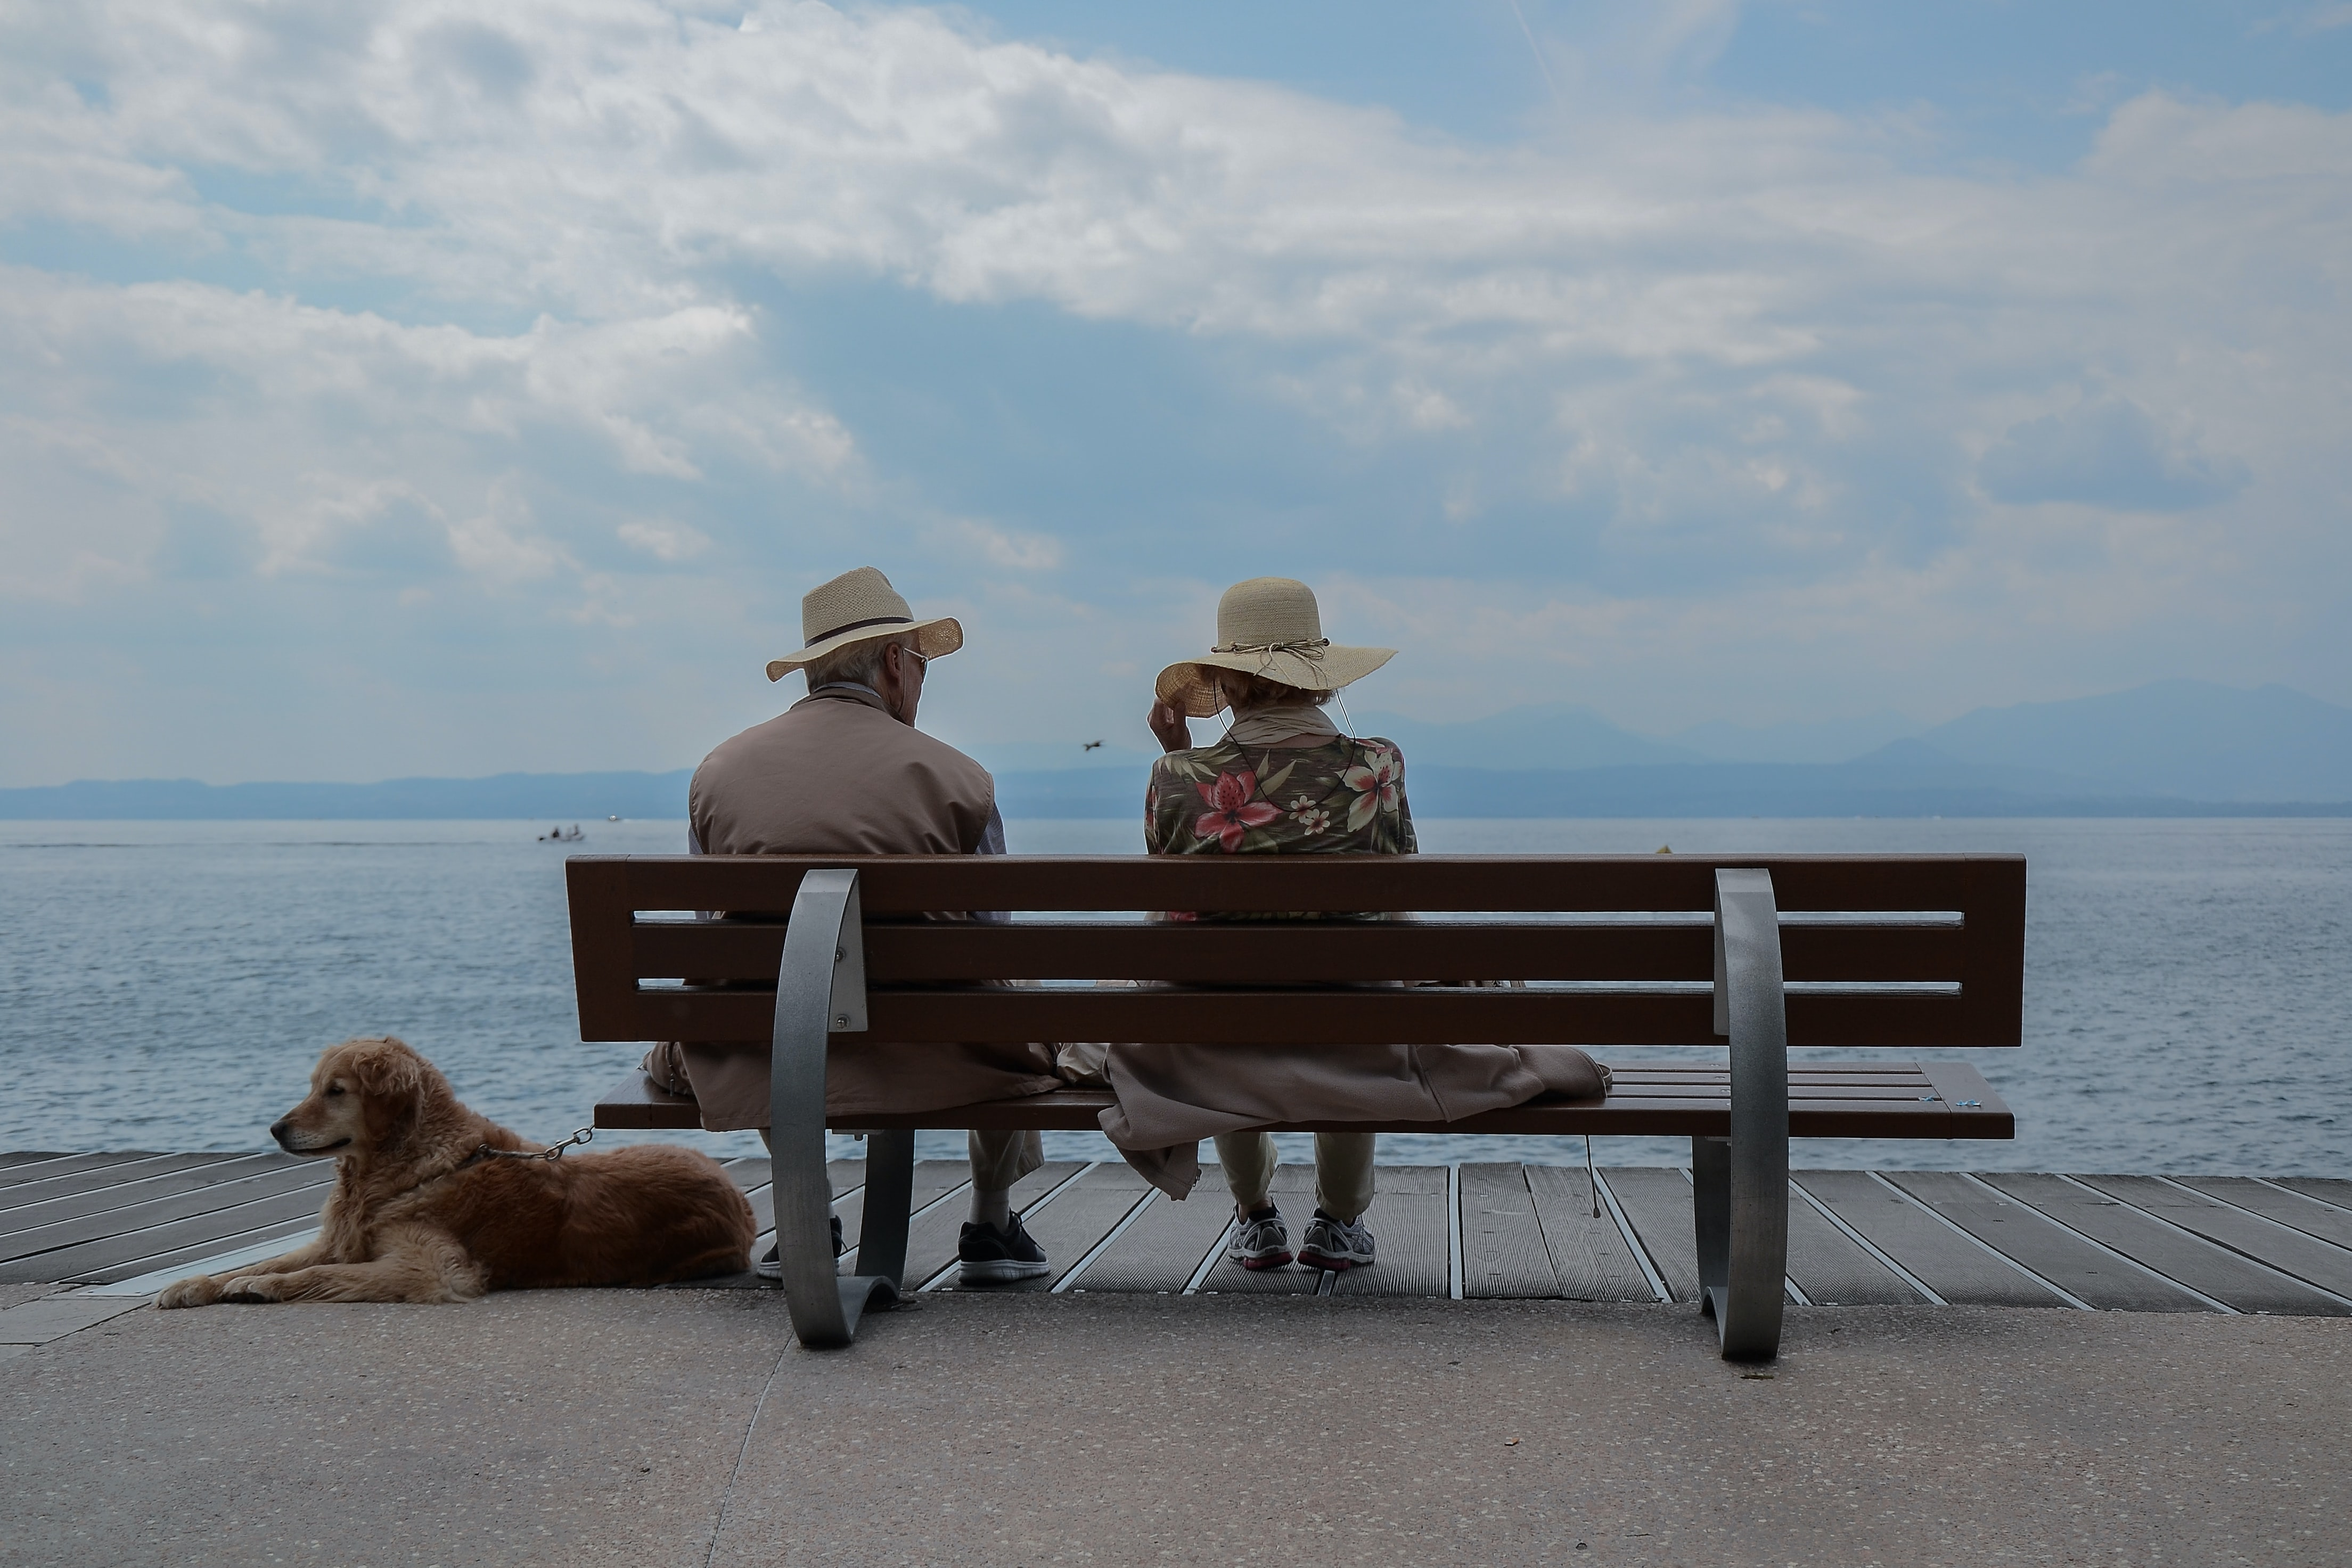 An older couple enjoy a seaside moment on a bench with their dog